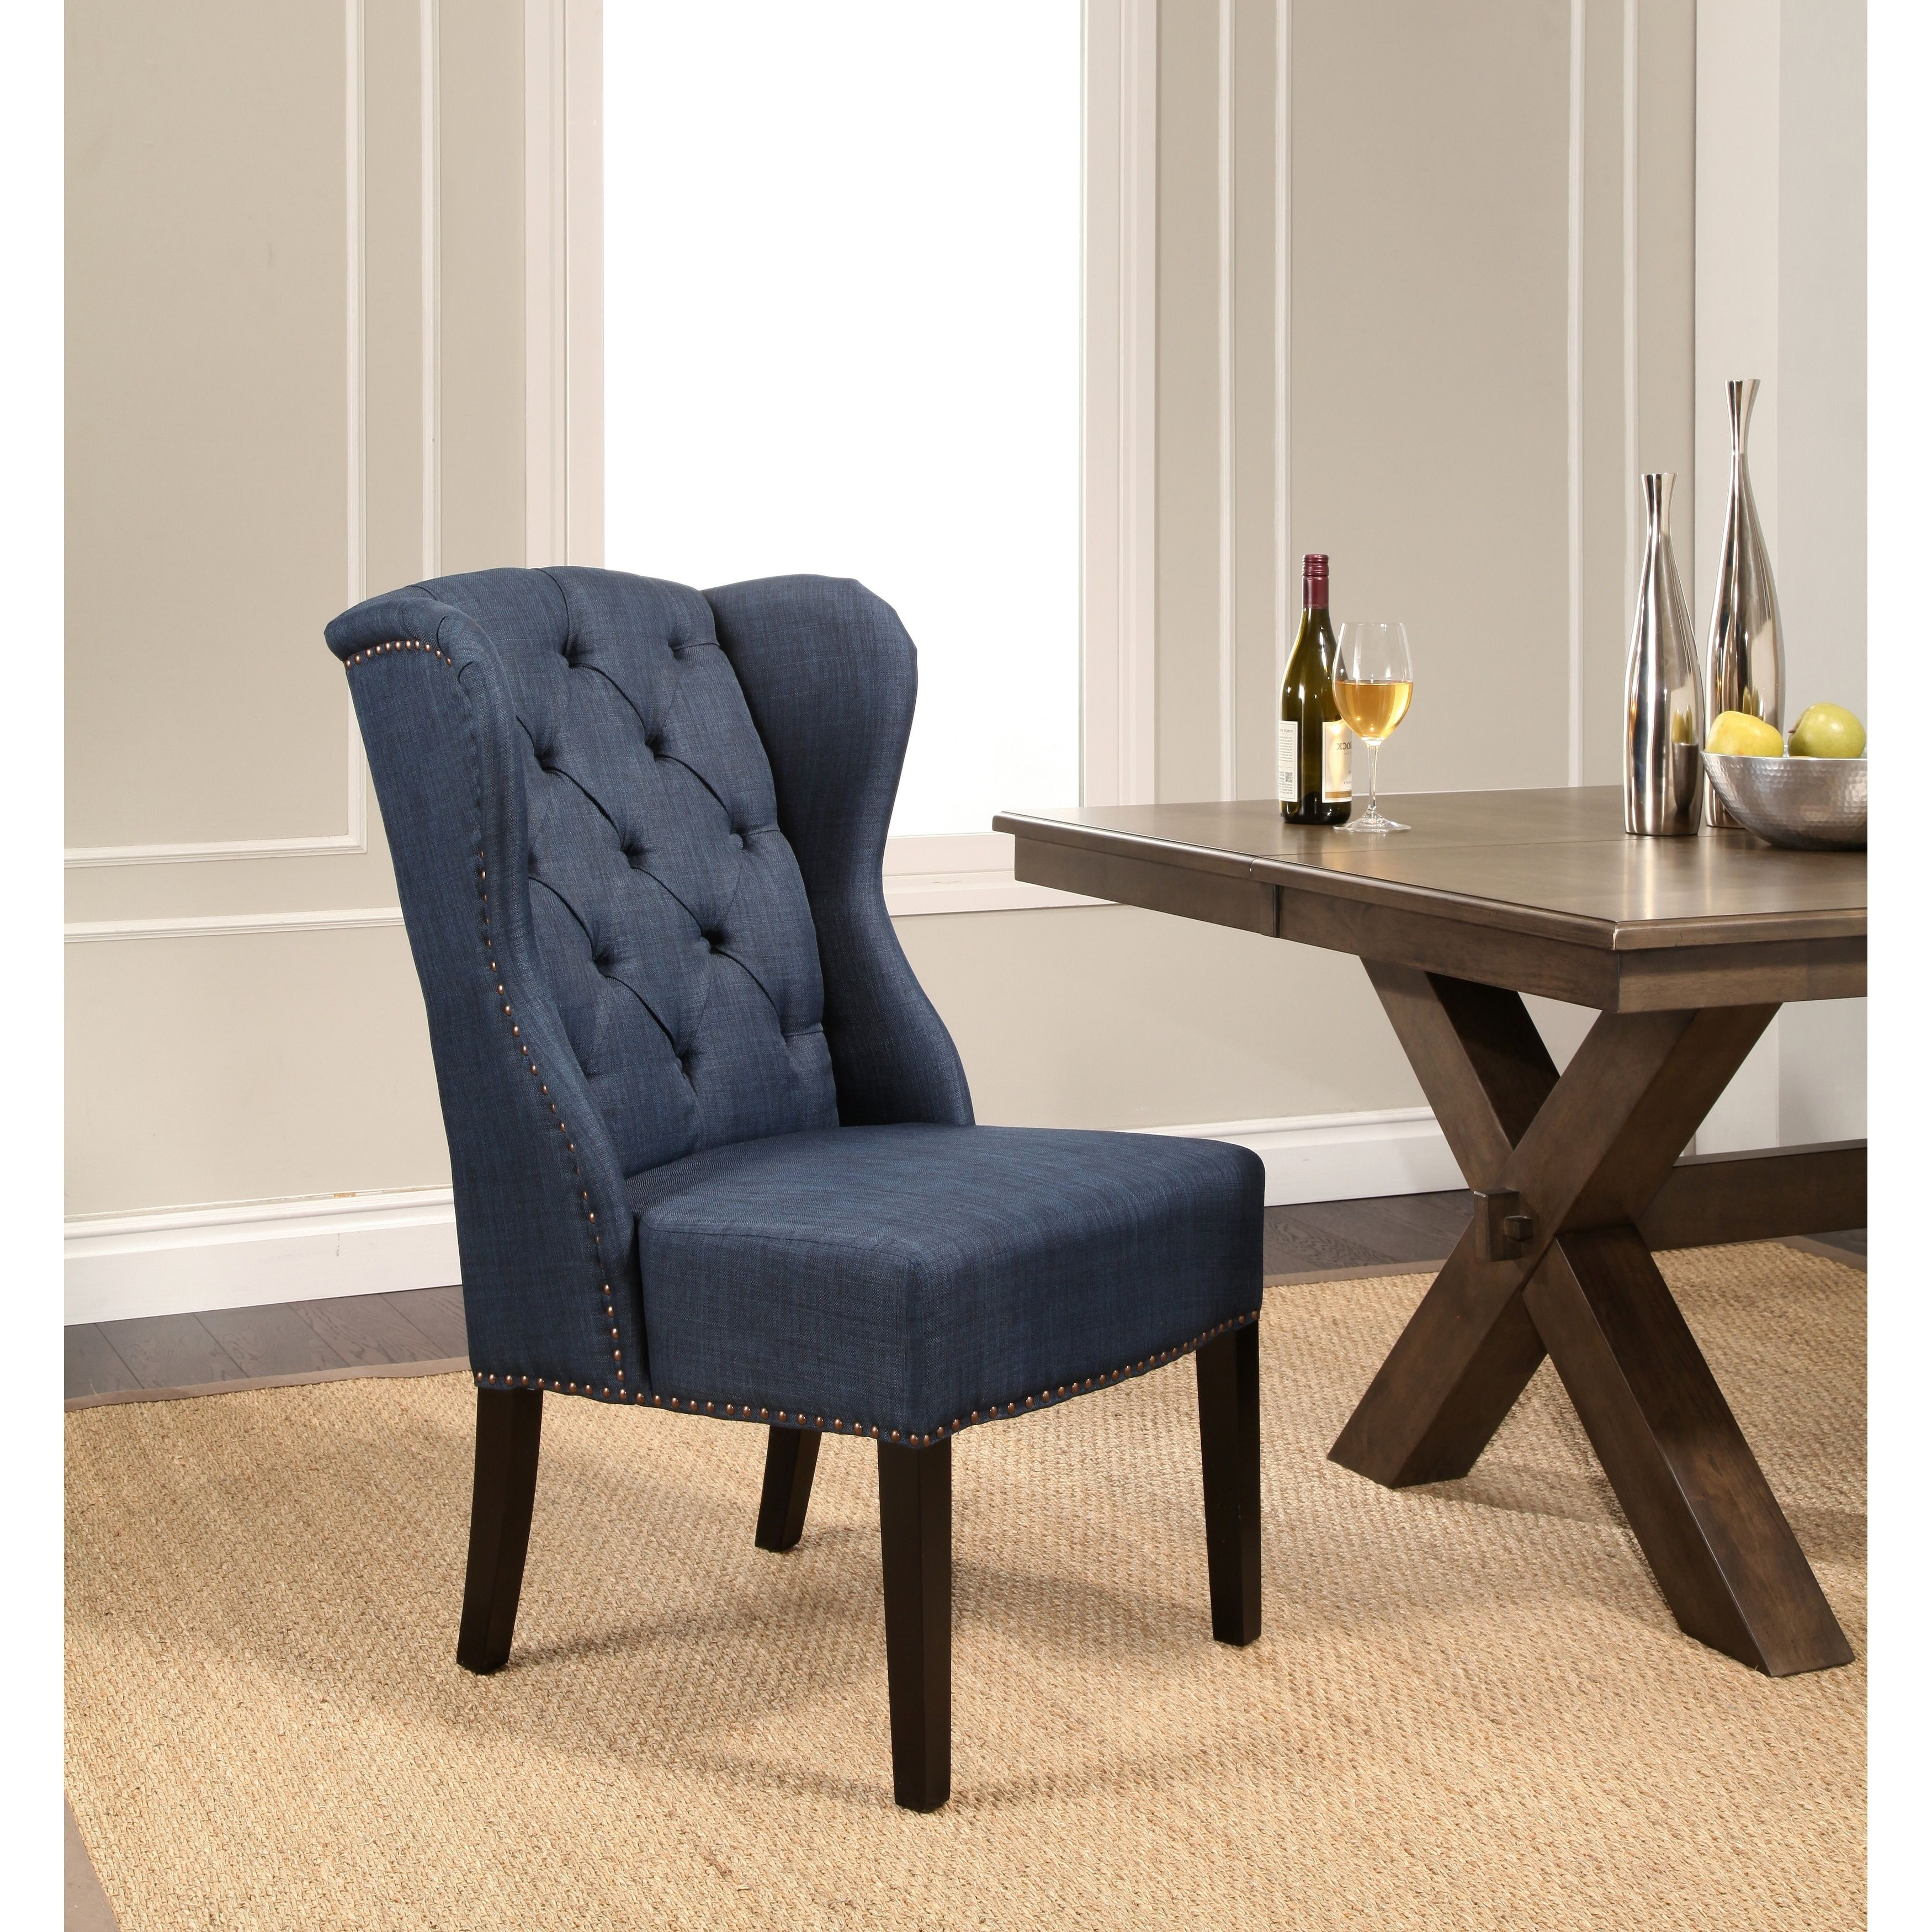 Wingback Dining Room Chairs Abbyson Sierra Tufted Fabric Wingback Dining Chair Grey